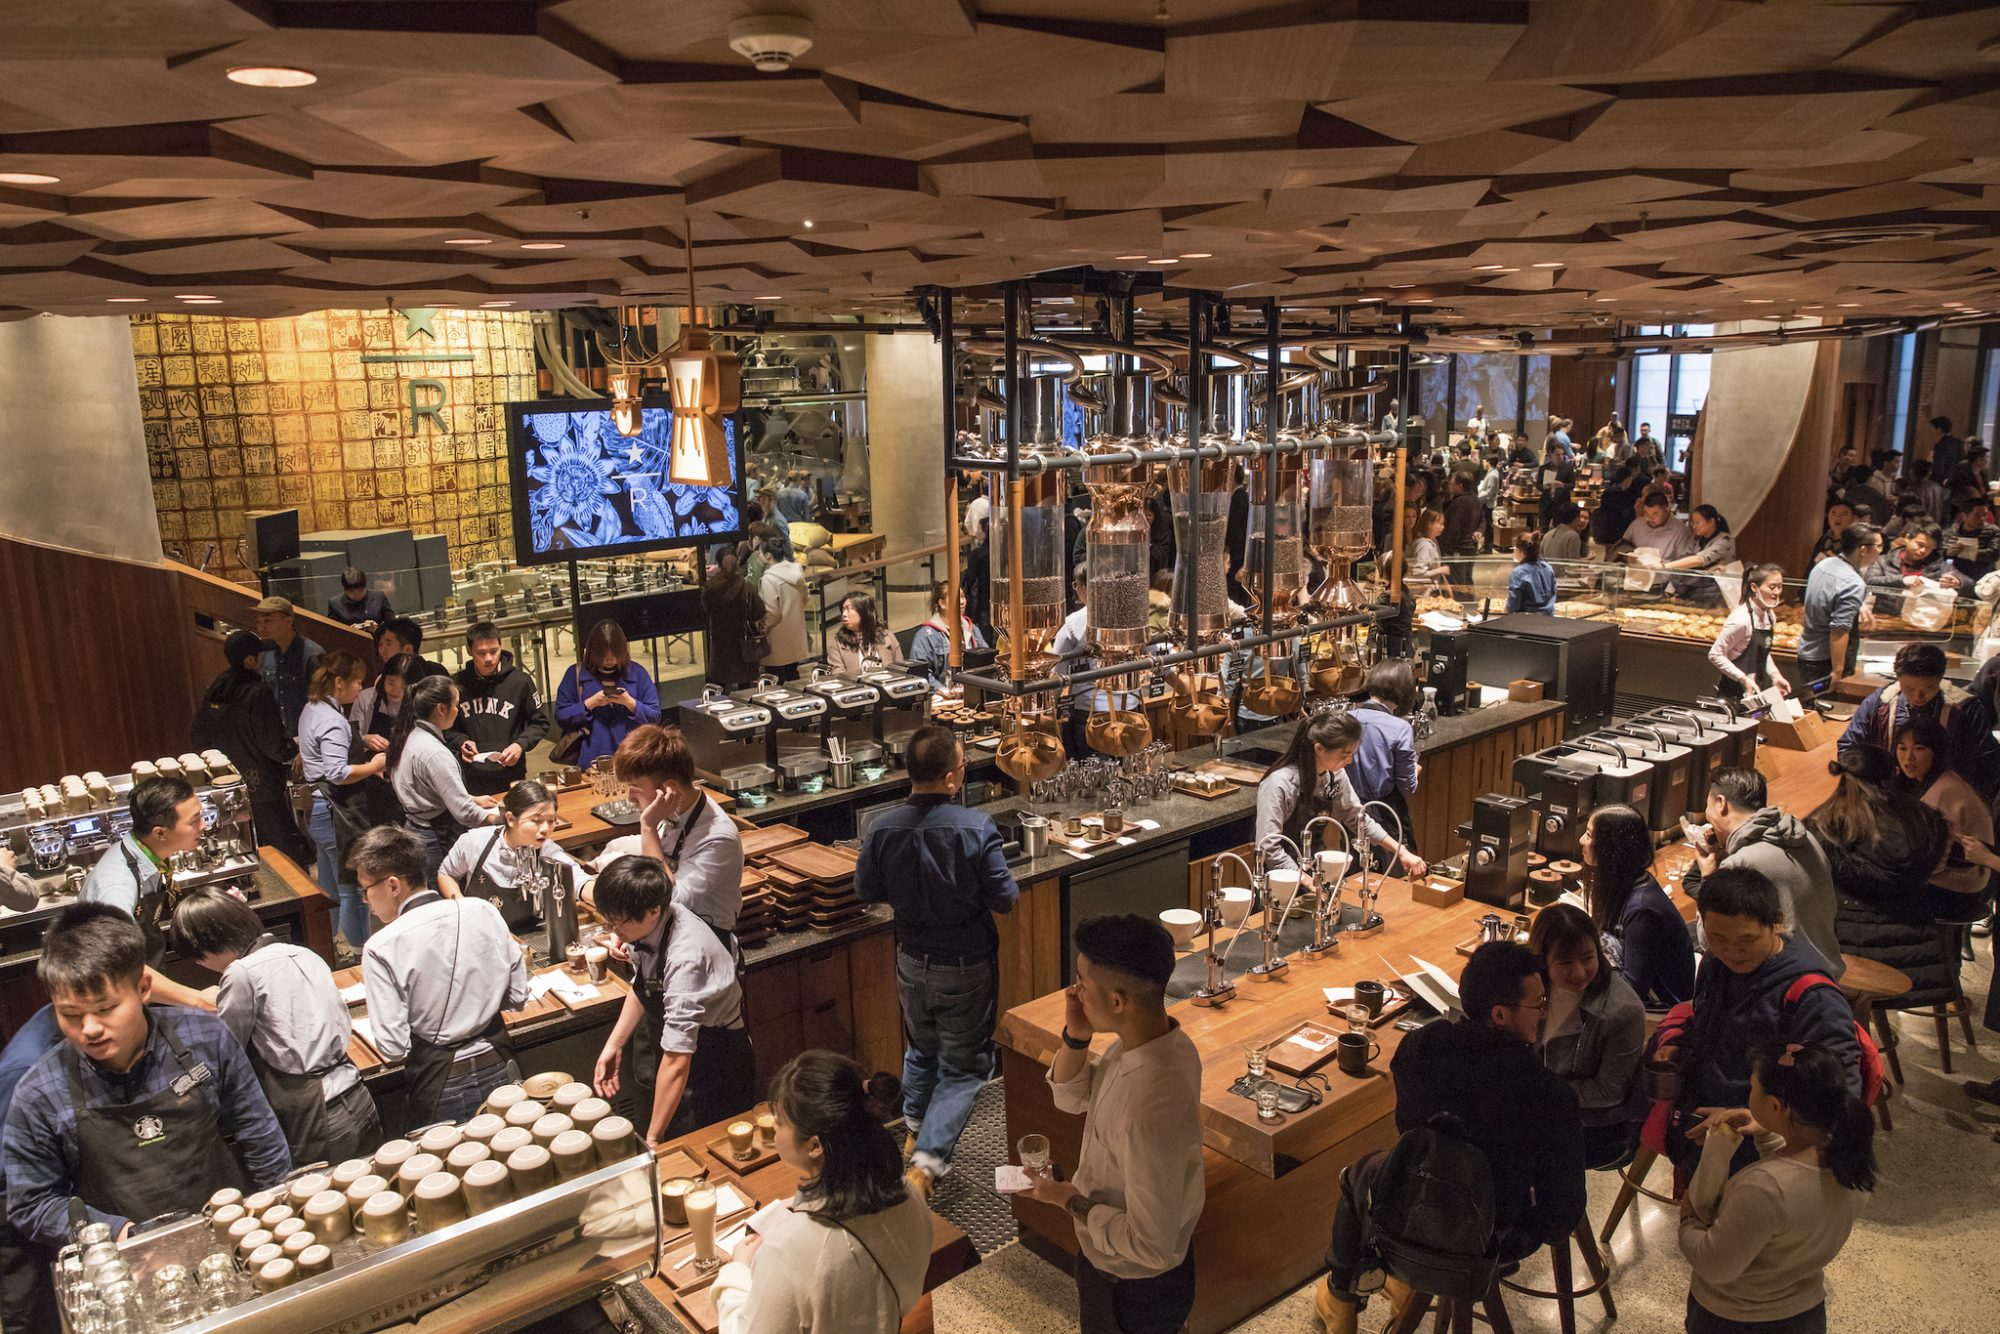 Starbucks' New Shanghai Store Is an Over-the-Top Coffee Wonderland